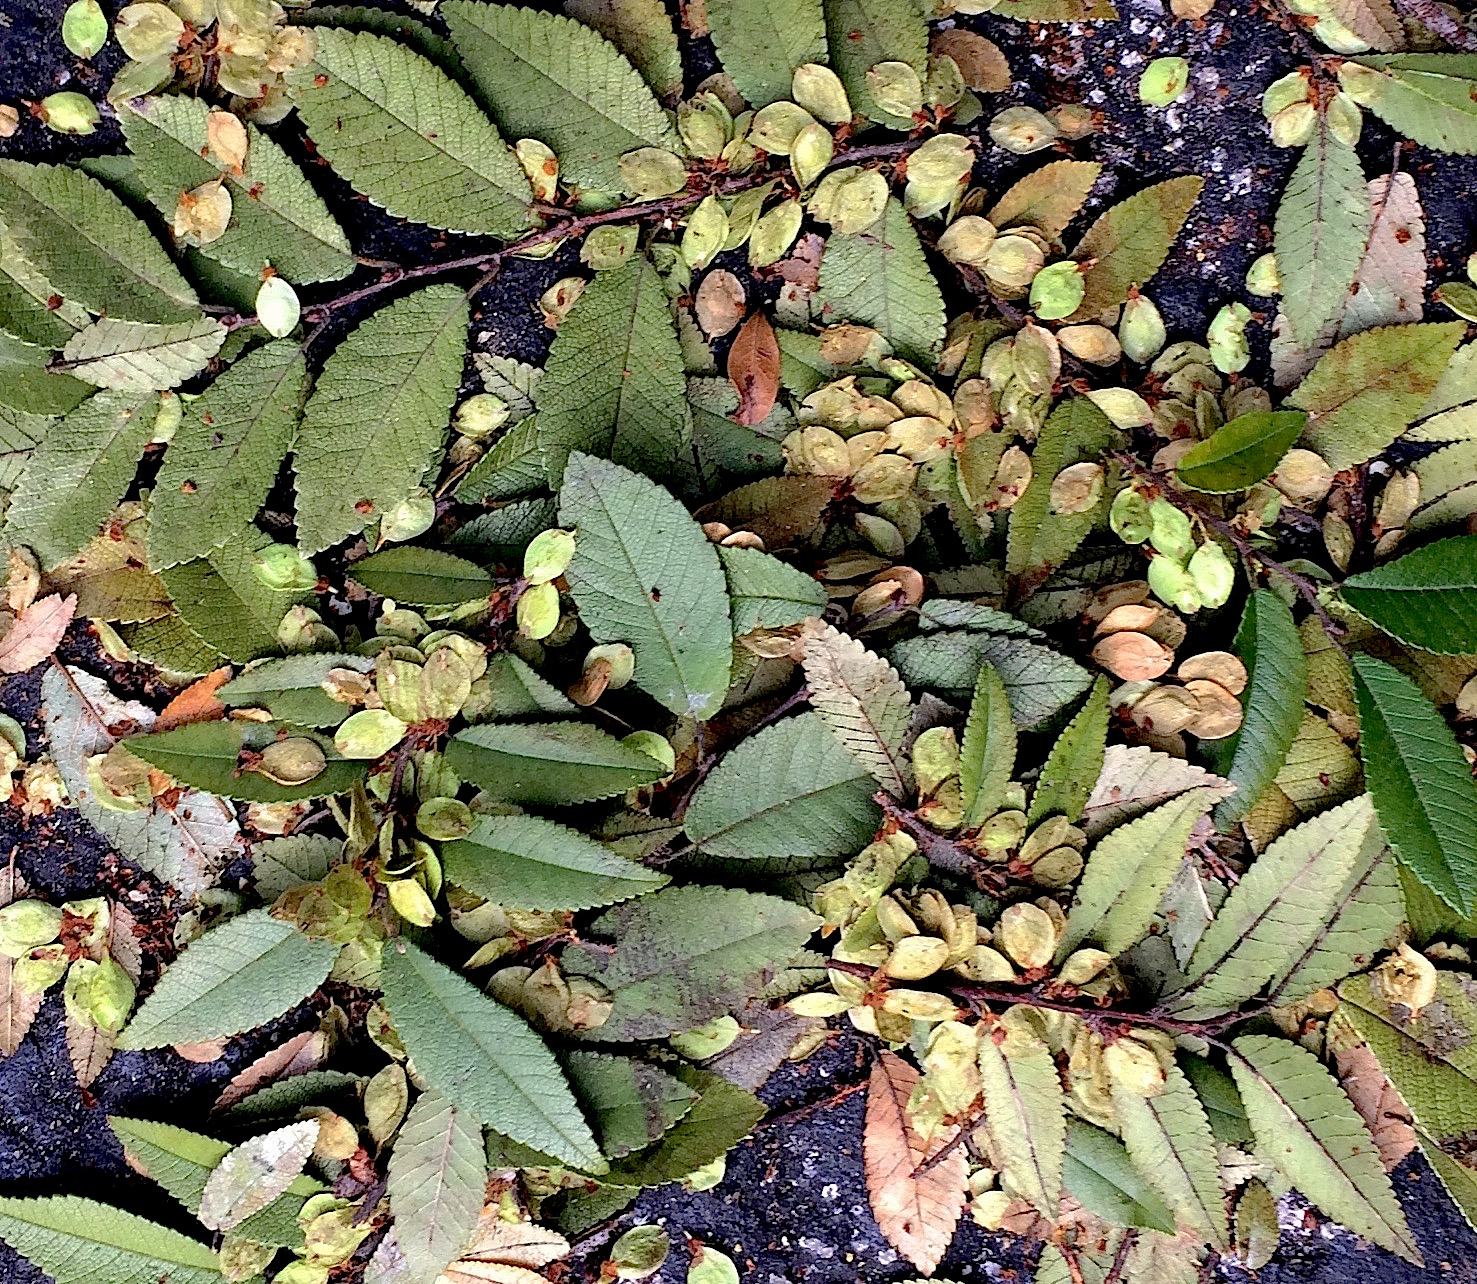 Around most Chinese elms now is a layer of falling leaves and samaras, both edible. The species is semi-deciduous so it doesn't loose all its leaves. To read more about the Chinese Elm go here. Photo by Green Deane